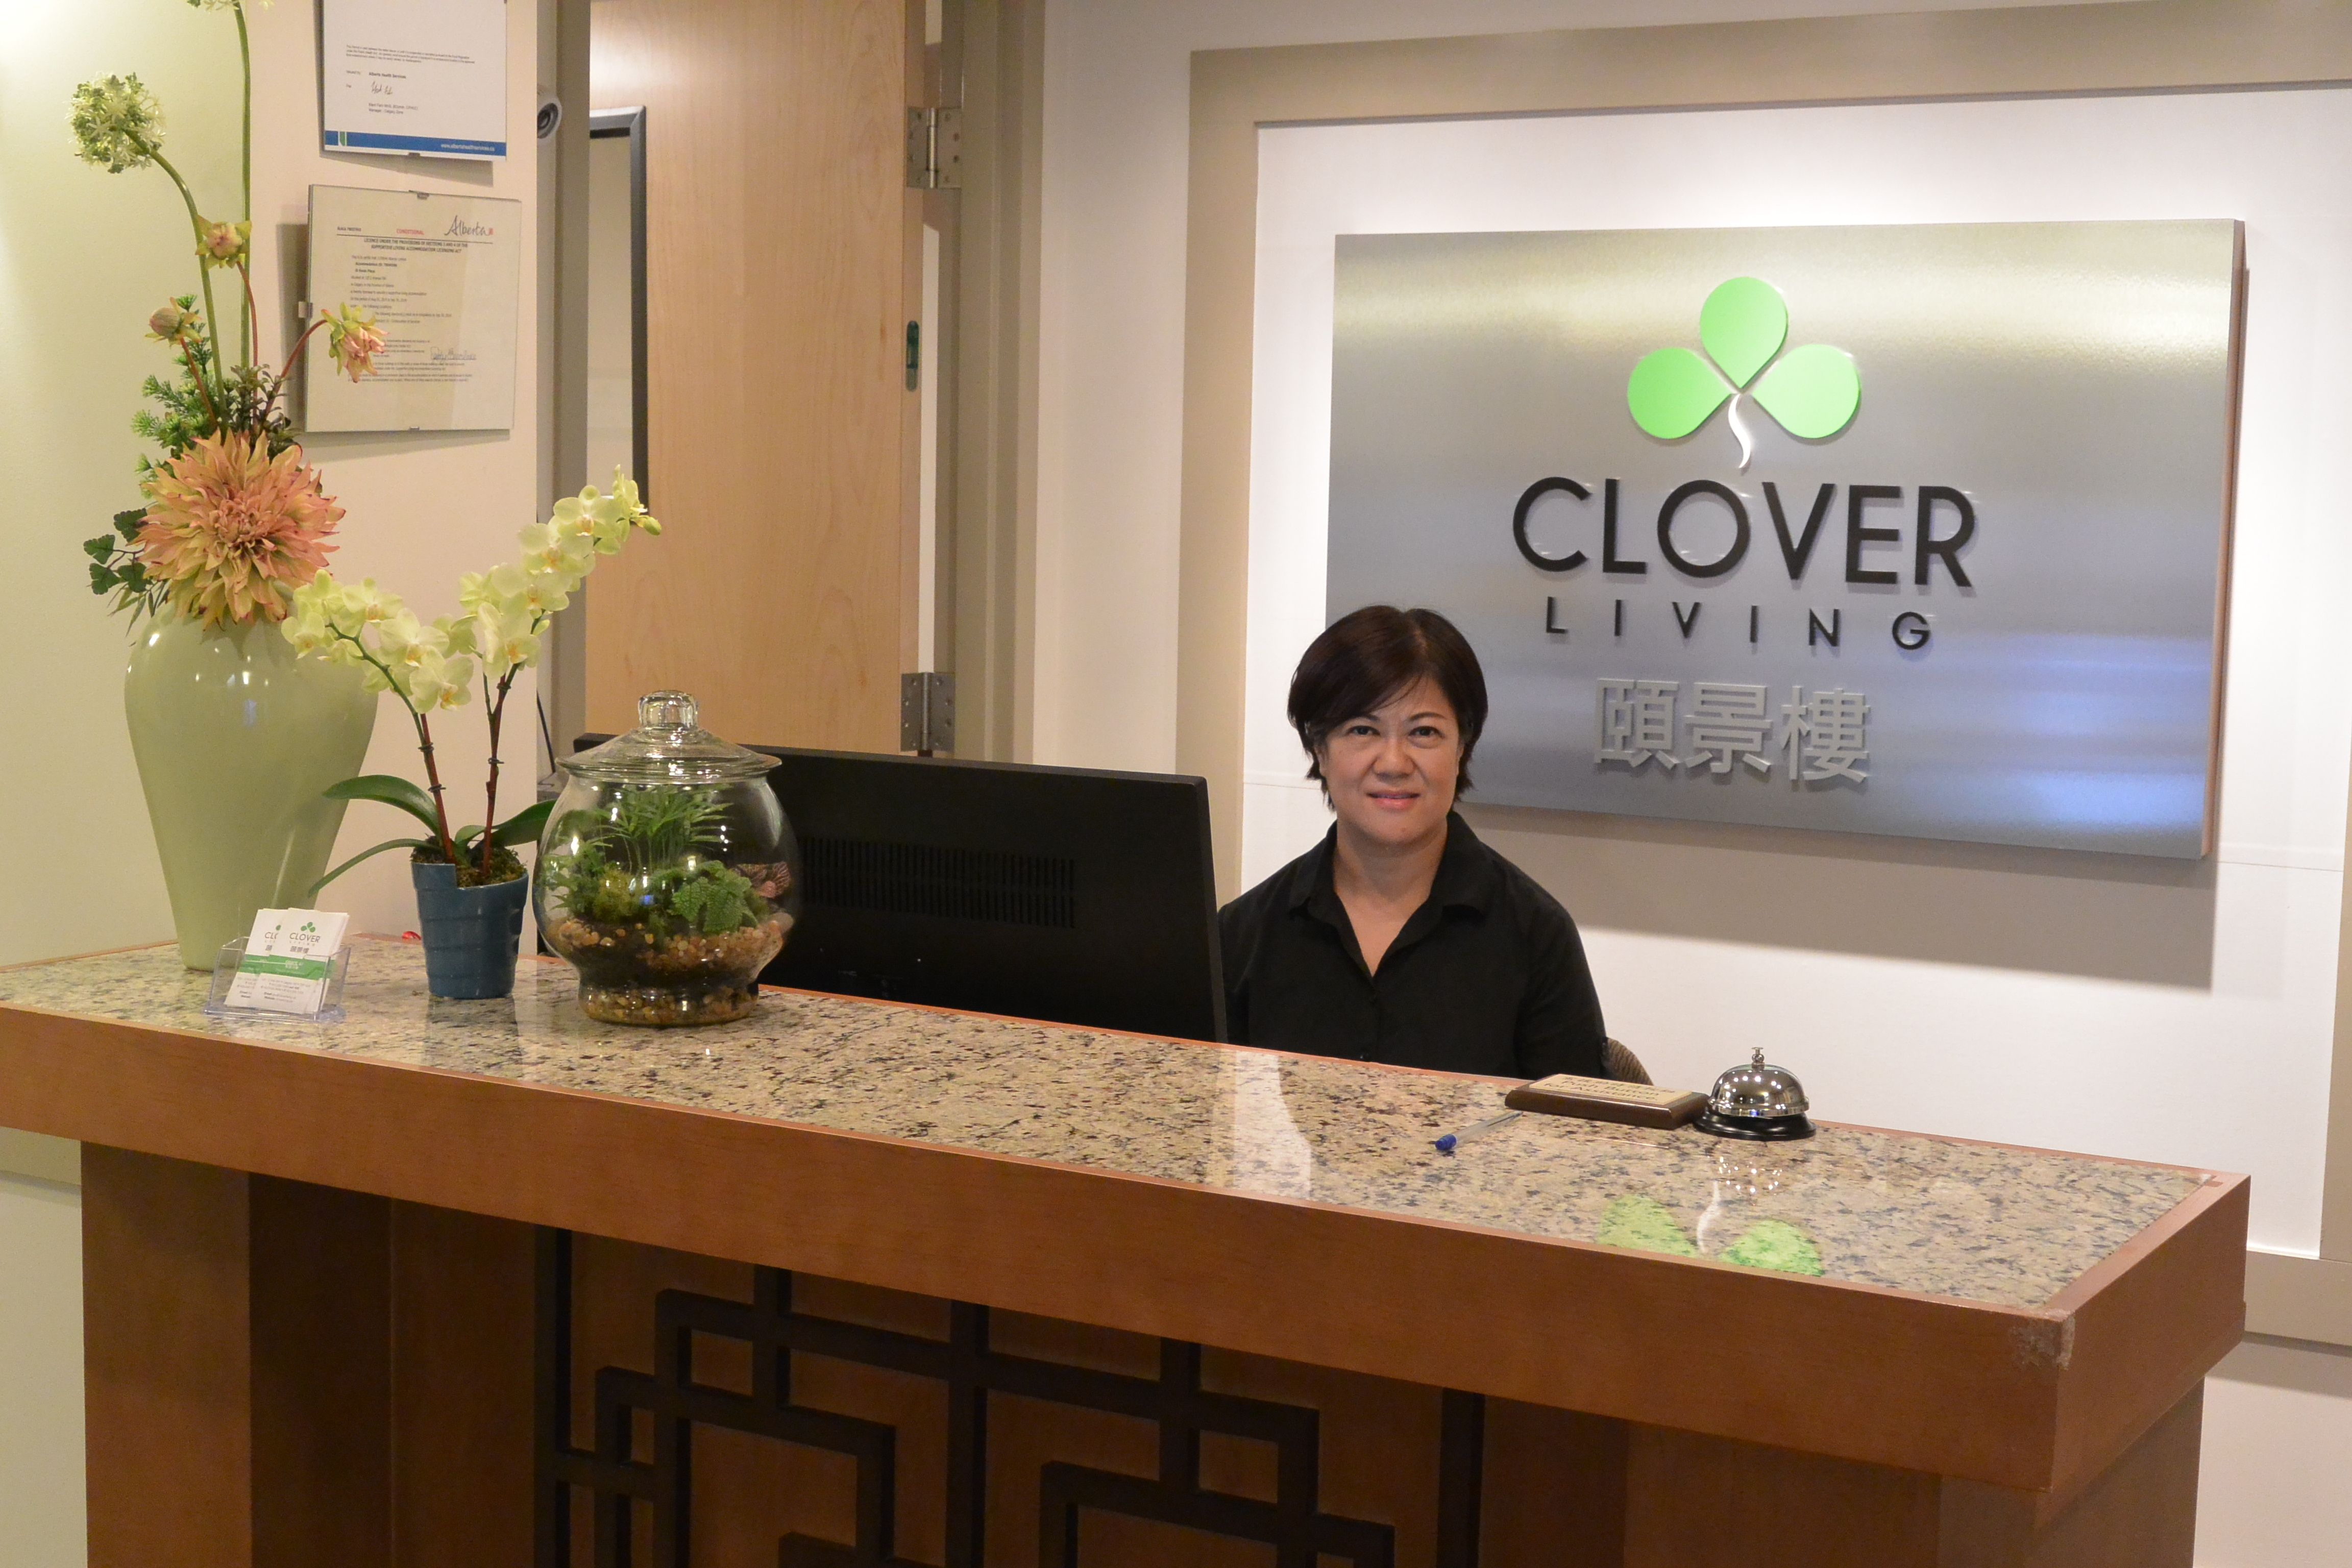 clover living suite 100 120 2nd ave sw t2p3j9 calgary pearl s